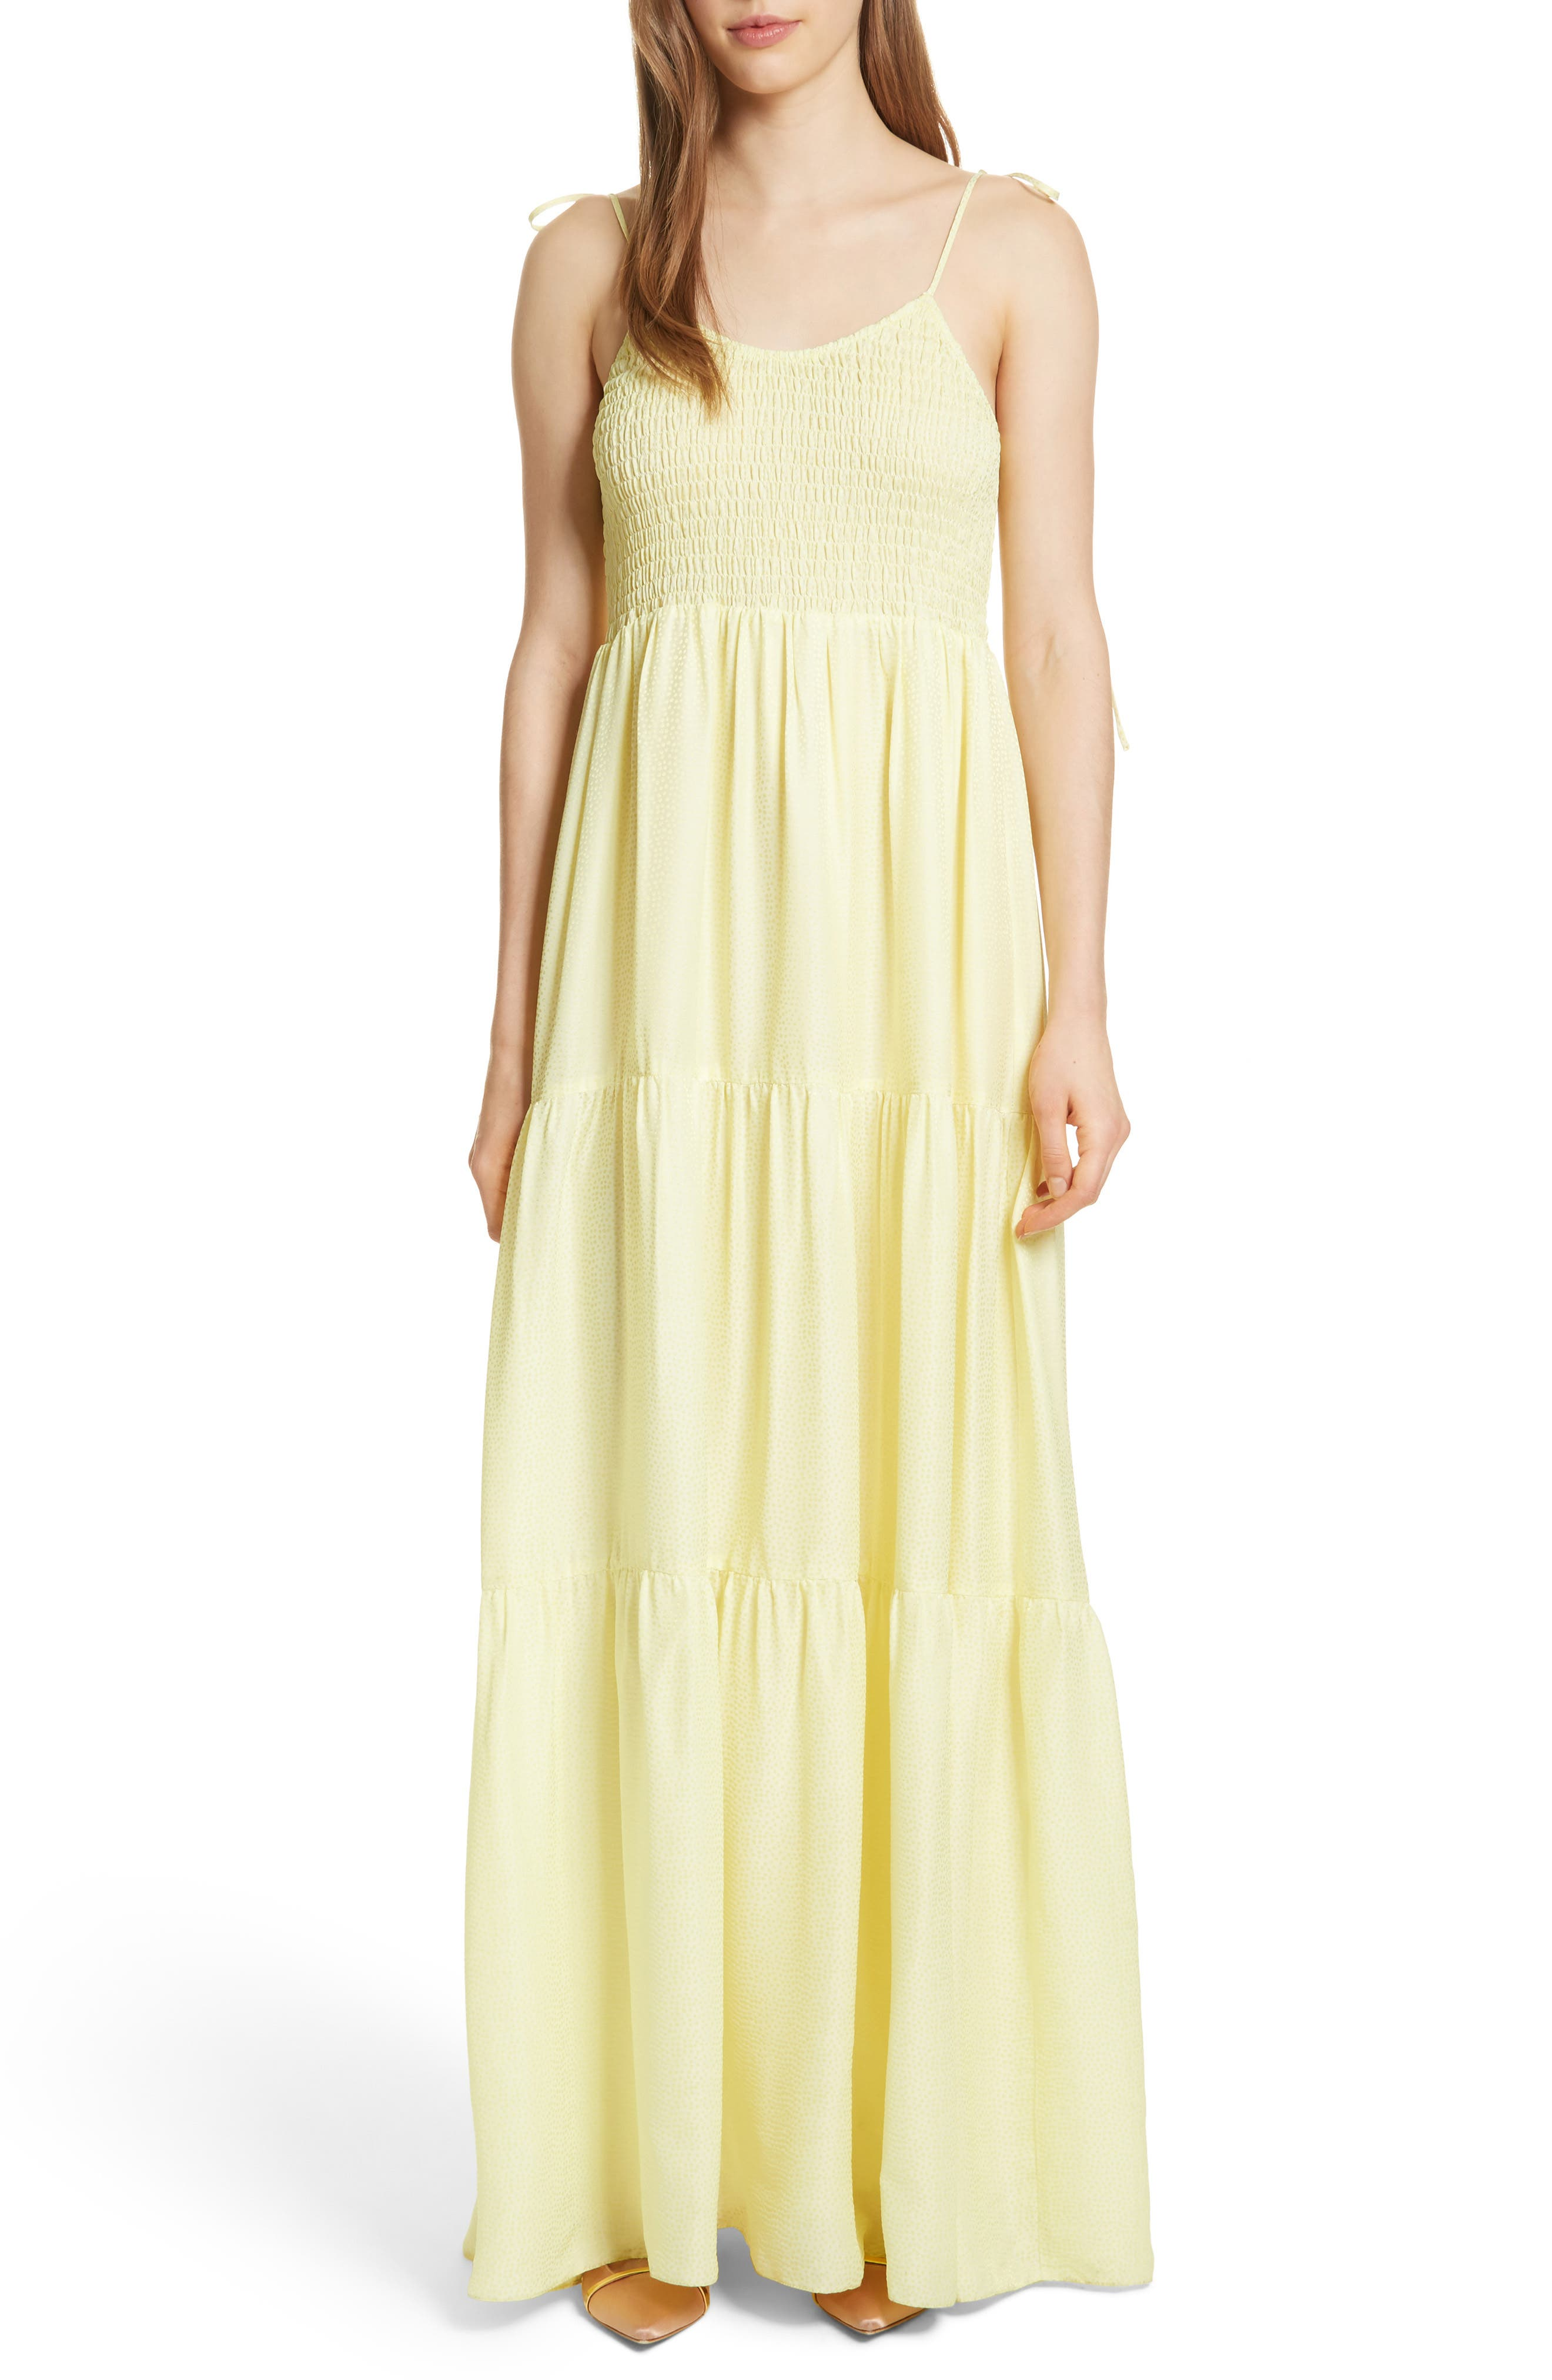 Prose & Poetry Inaya Maxi Dress,                         Main,                         color, Limoncello